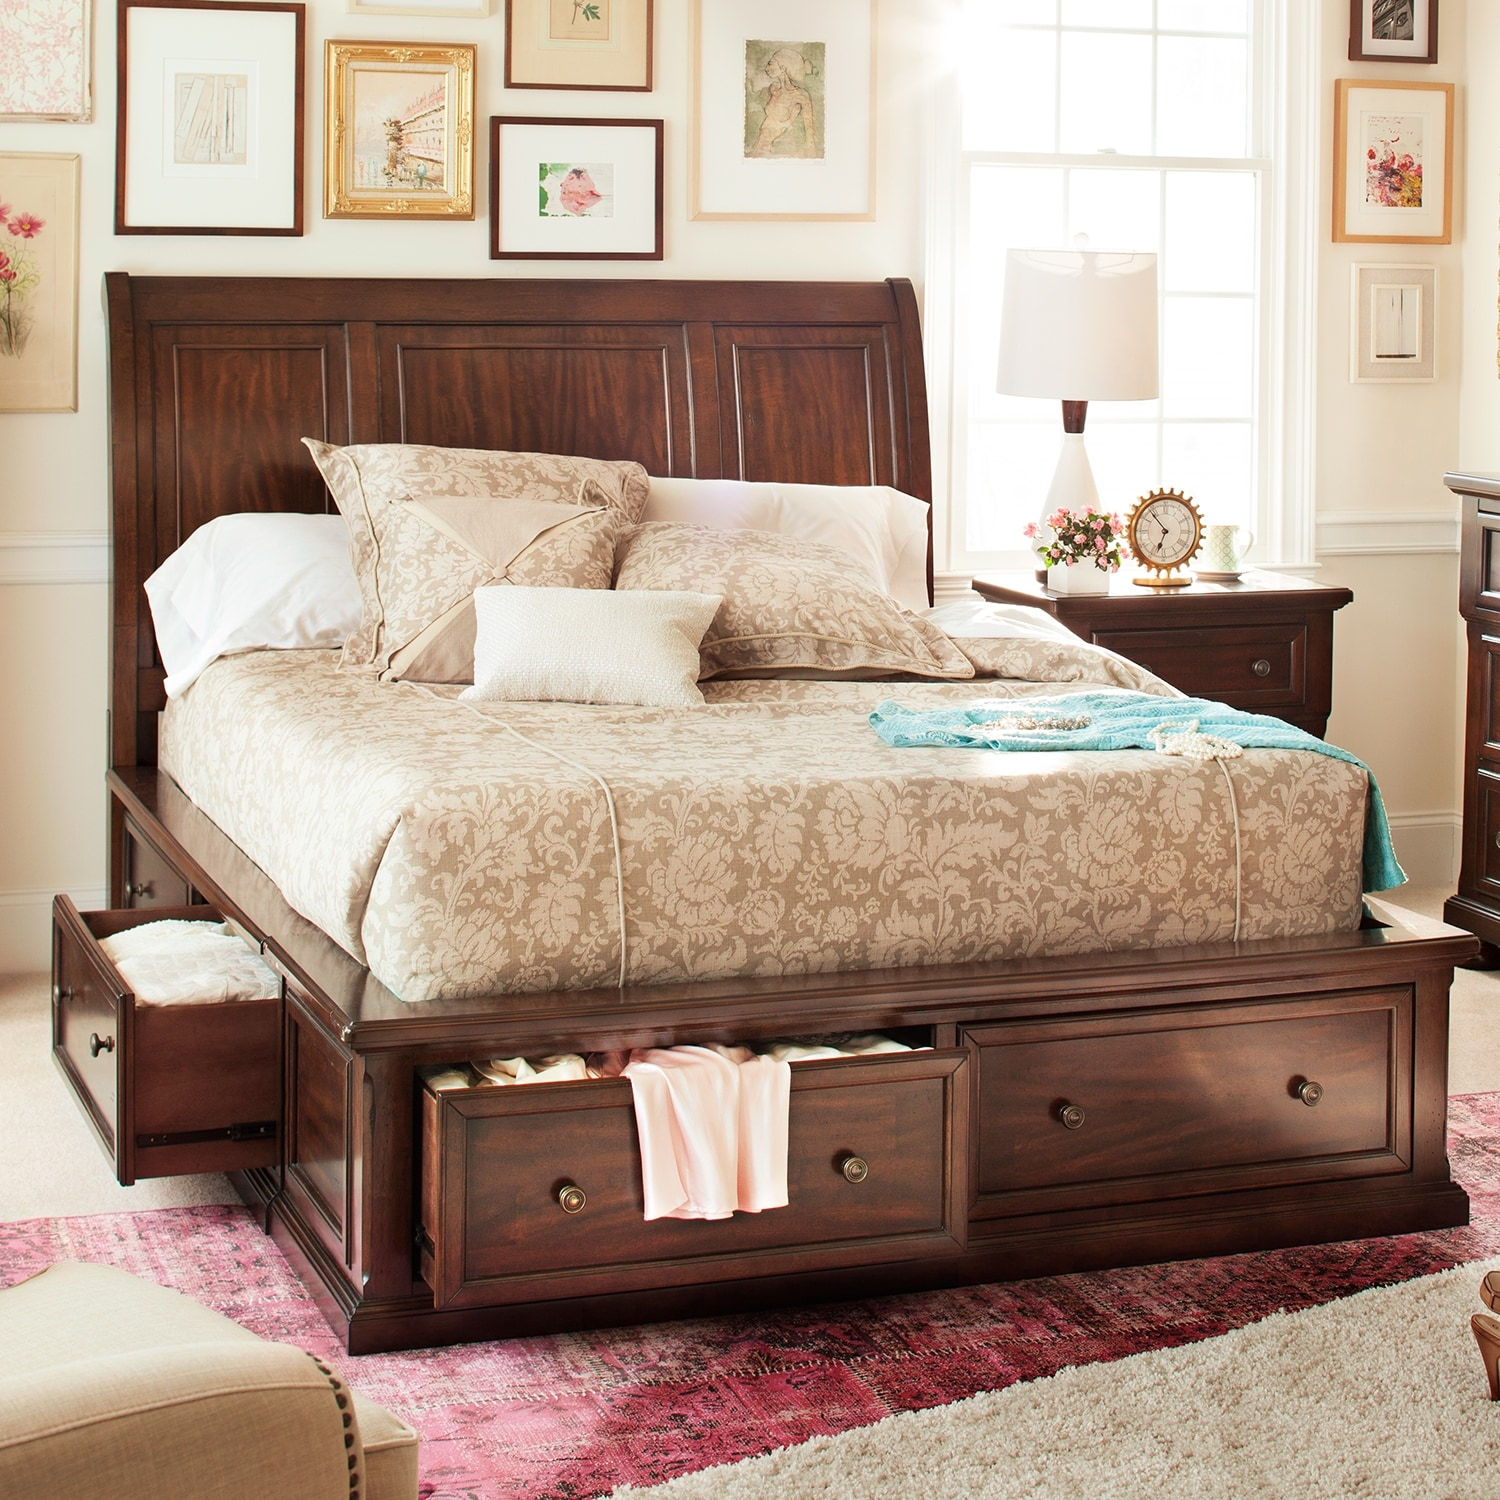 Hanover King Storage Bed - Cherry | American Signature Furniture